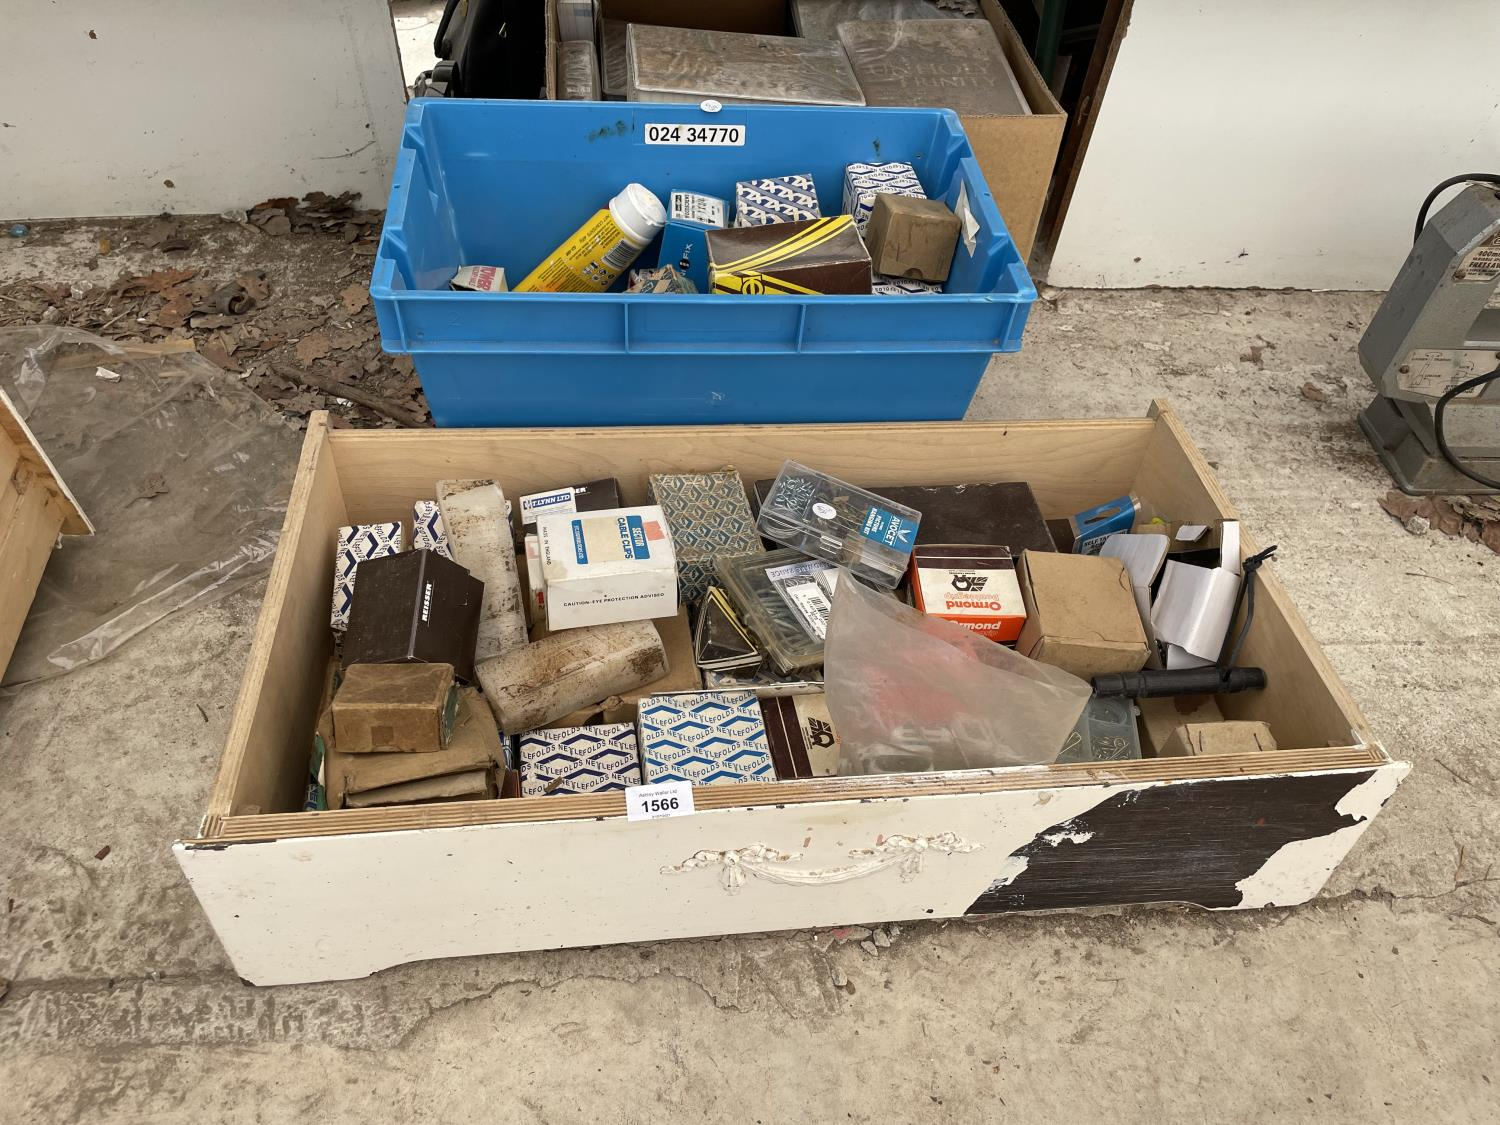 A LARGE QUANTITY OF SCREWS, NAILS AND PICTURE HOOKS ETC - Image 2 of 6